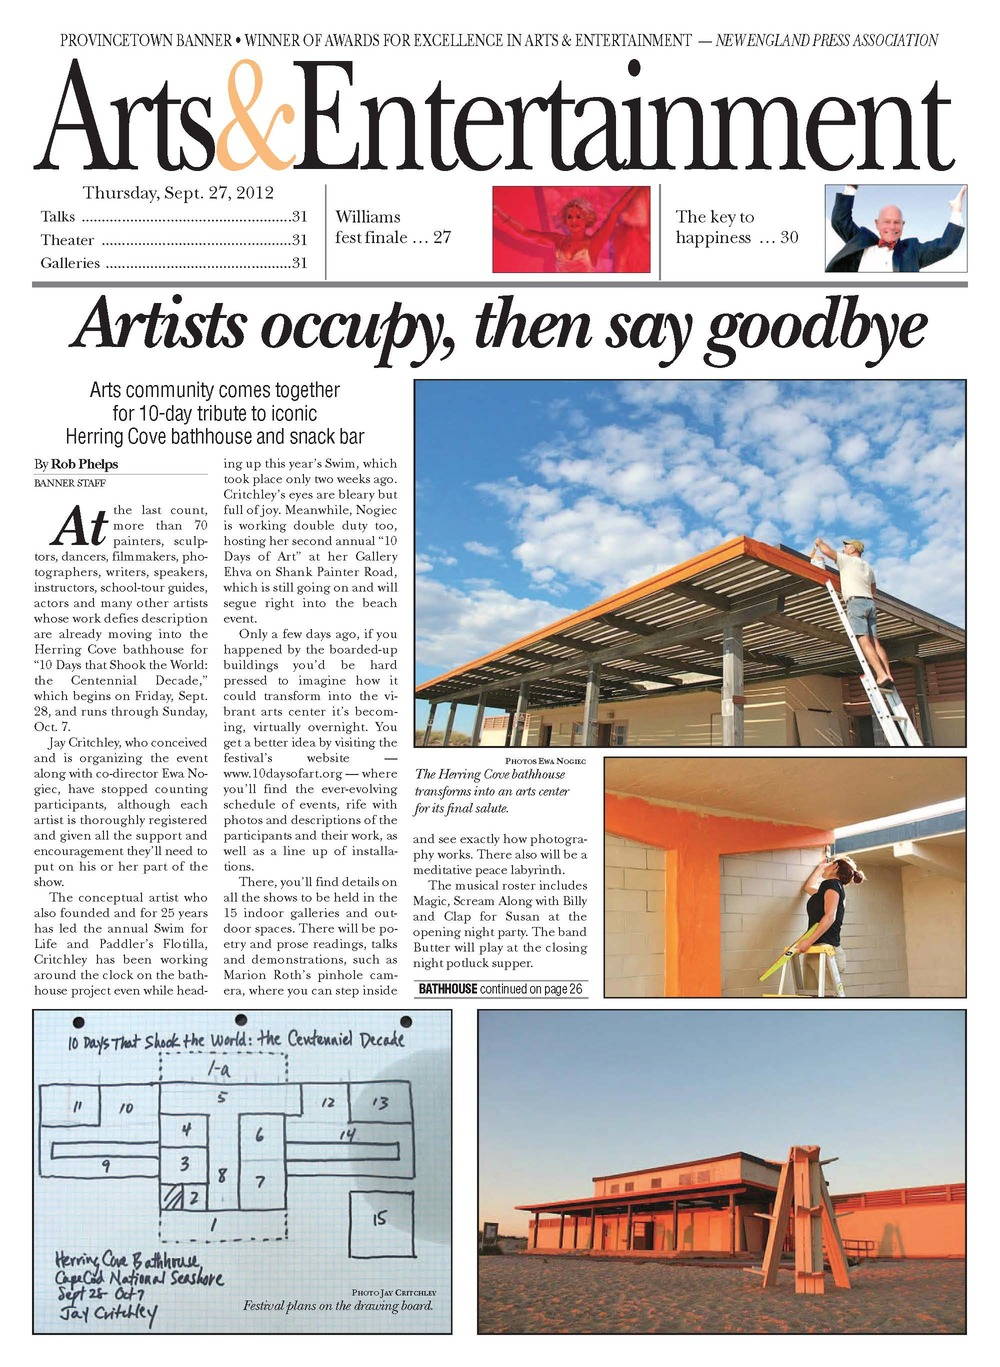 Feature on artists site-occupation exhibition,  Provincetown Banner,  September 27, 2012  A story in the arts section while I served as the Banner's arts editor.